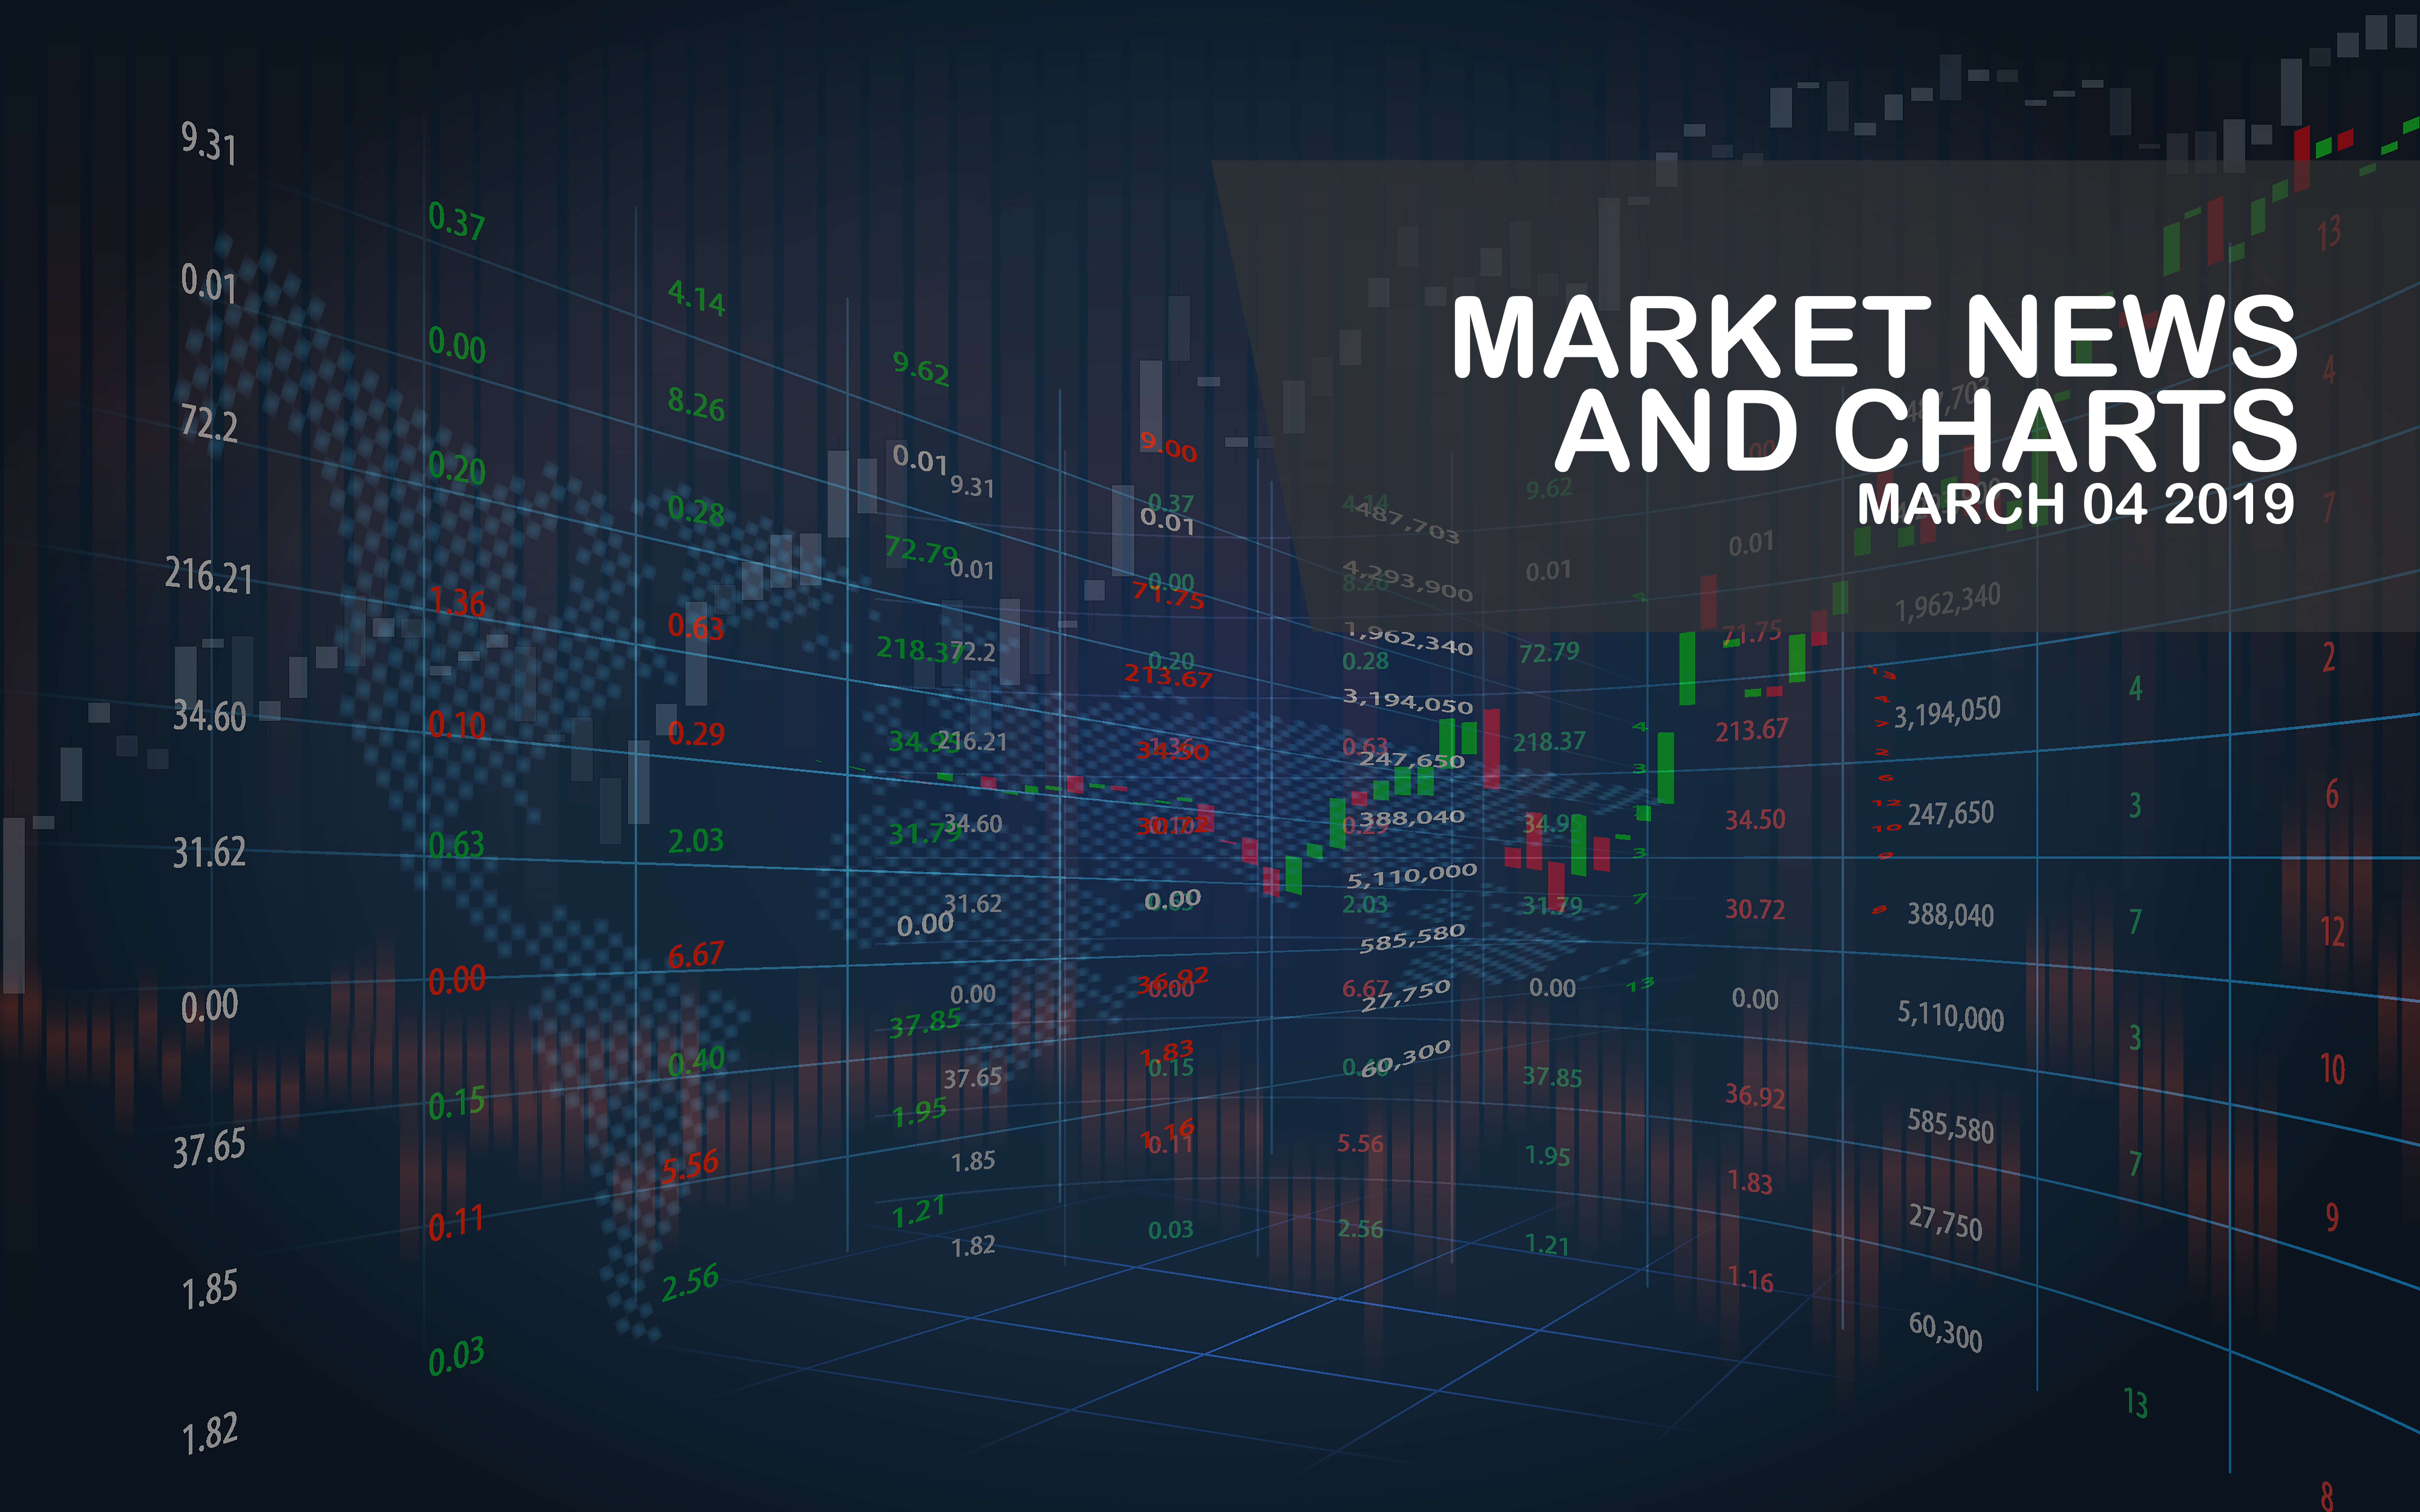 Market-News-and-Charts-March-4-2019-Finance-Brokerage1